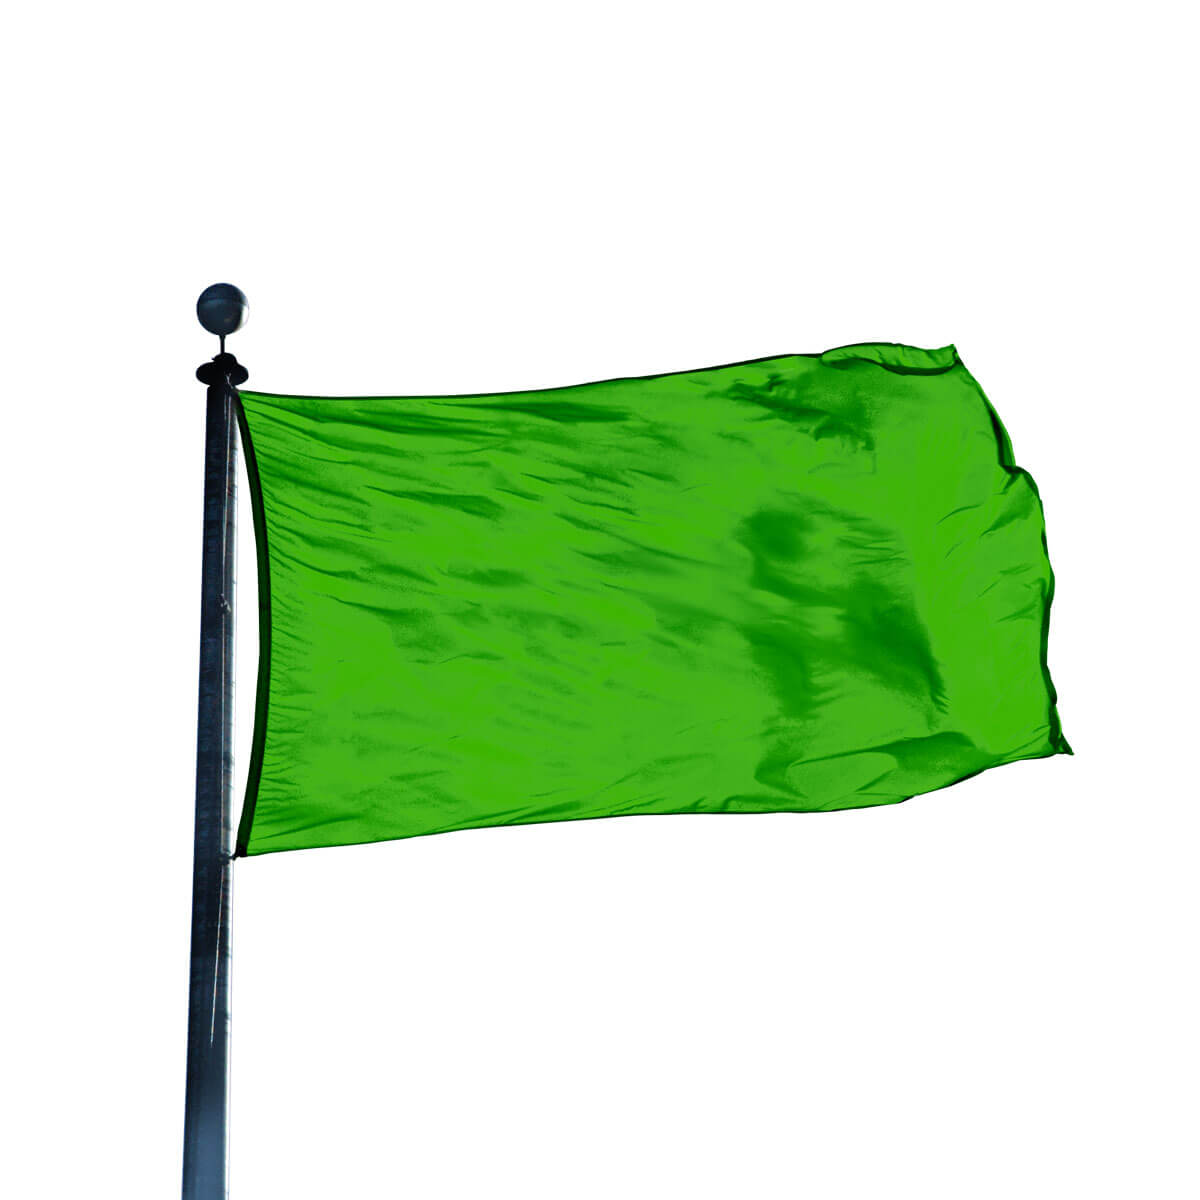 colorful attention grabbing flag with heavy bleached cloth heading